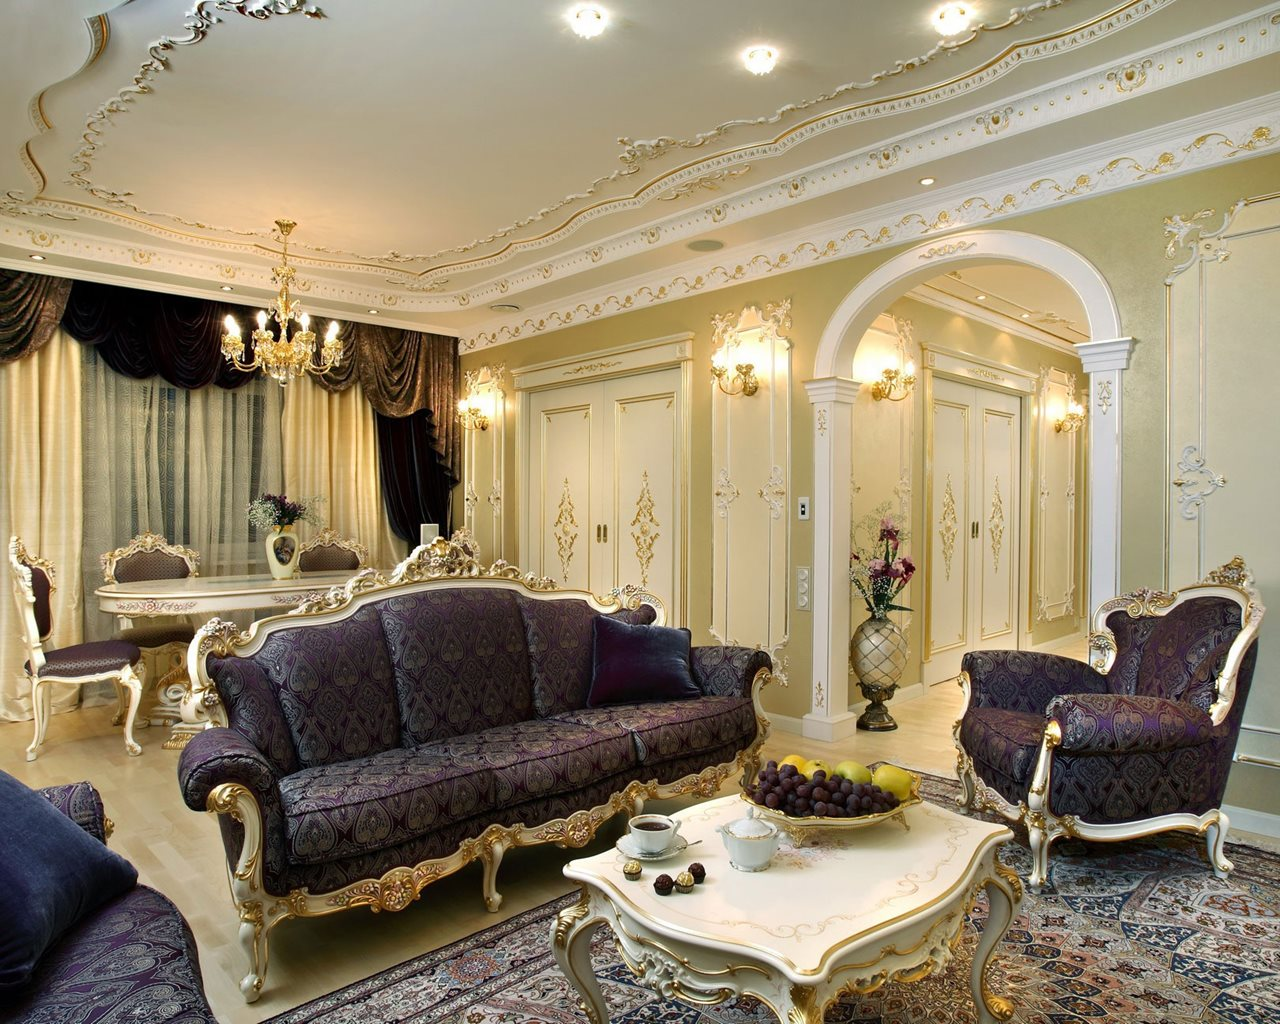 Baroque style interior design ideas for Interior design styles living room